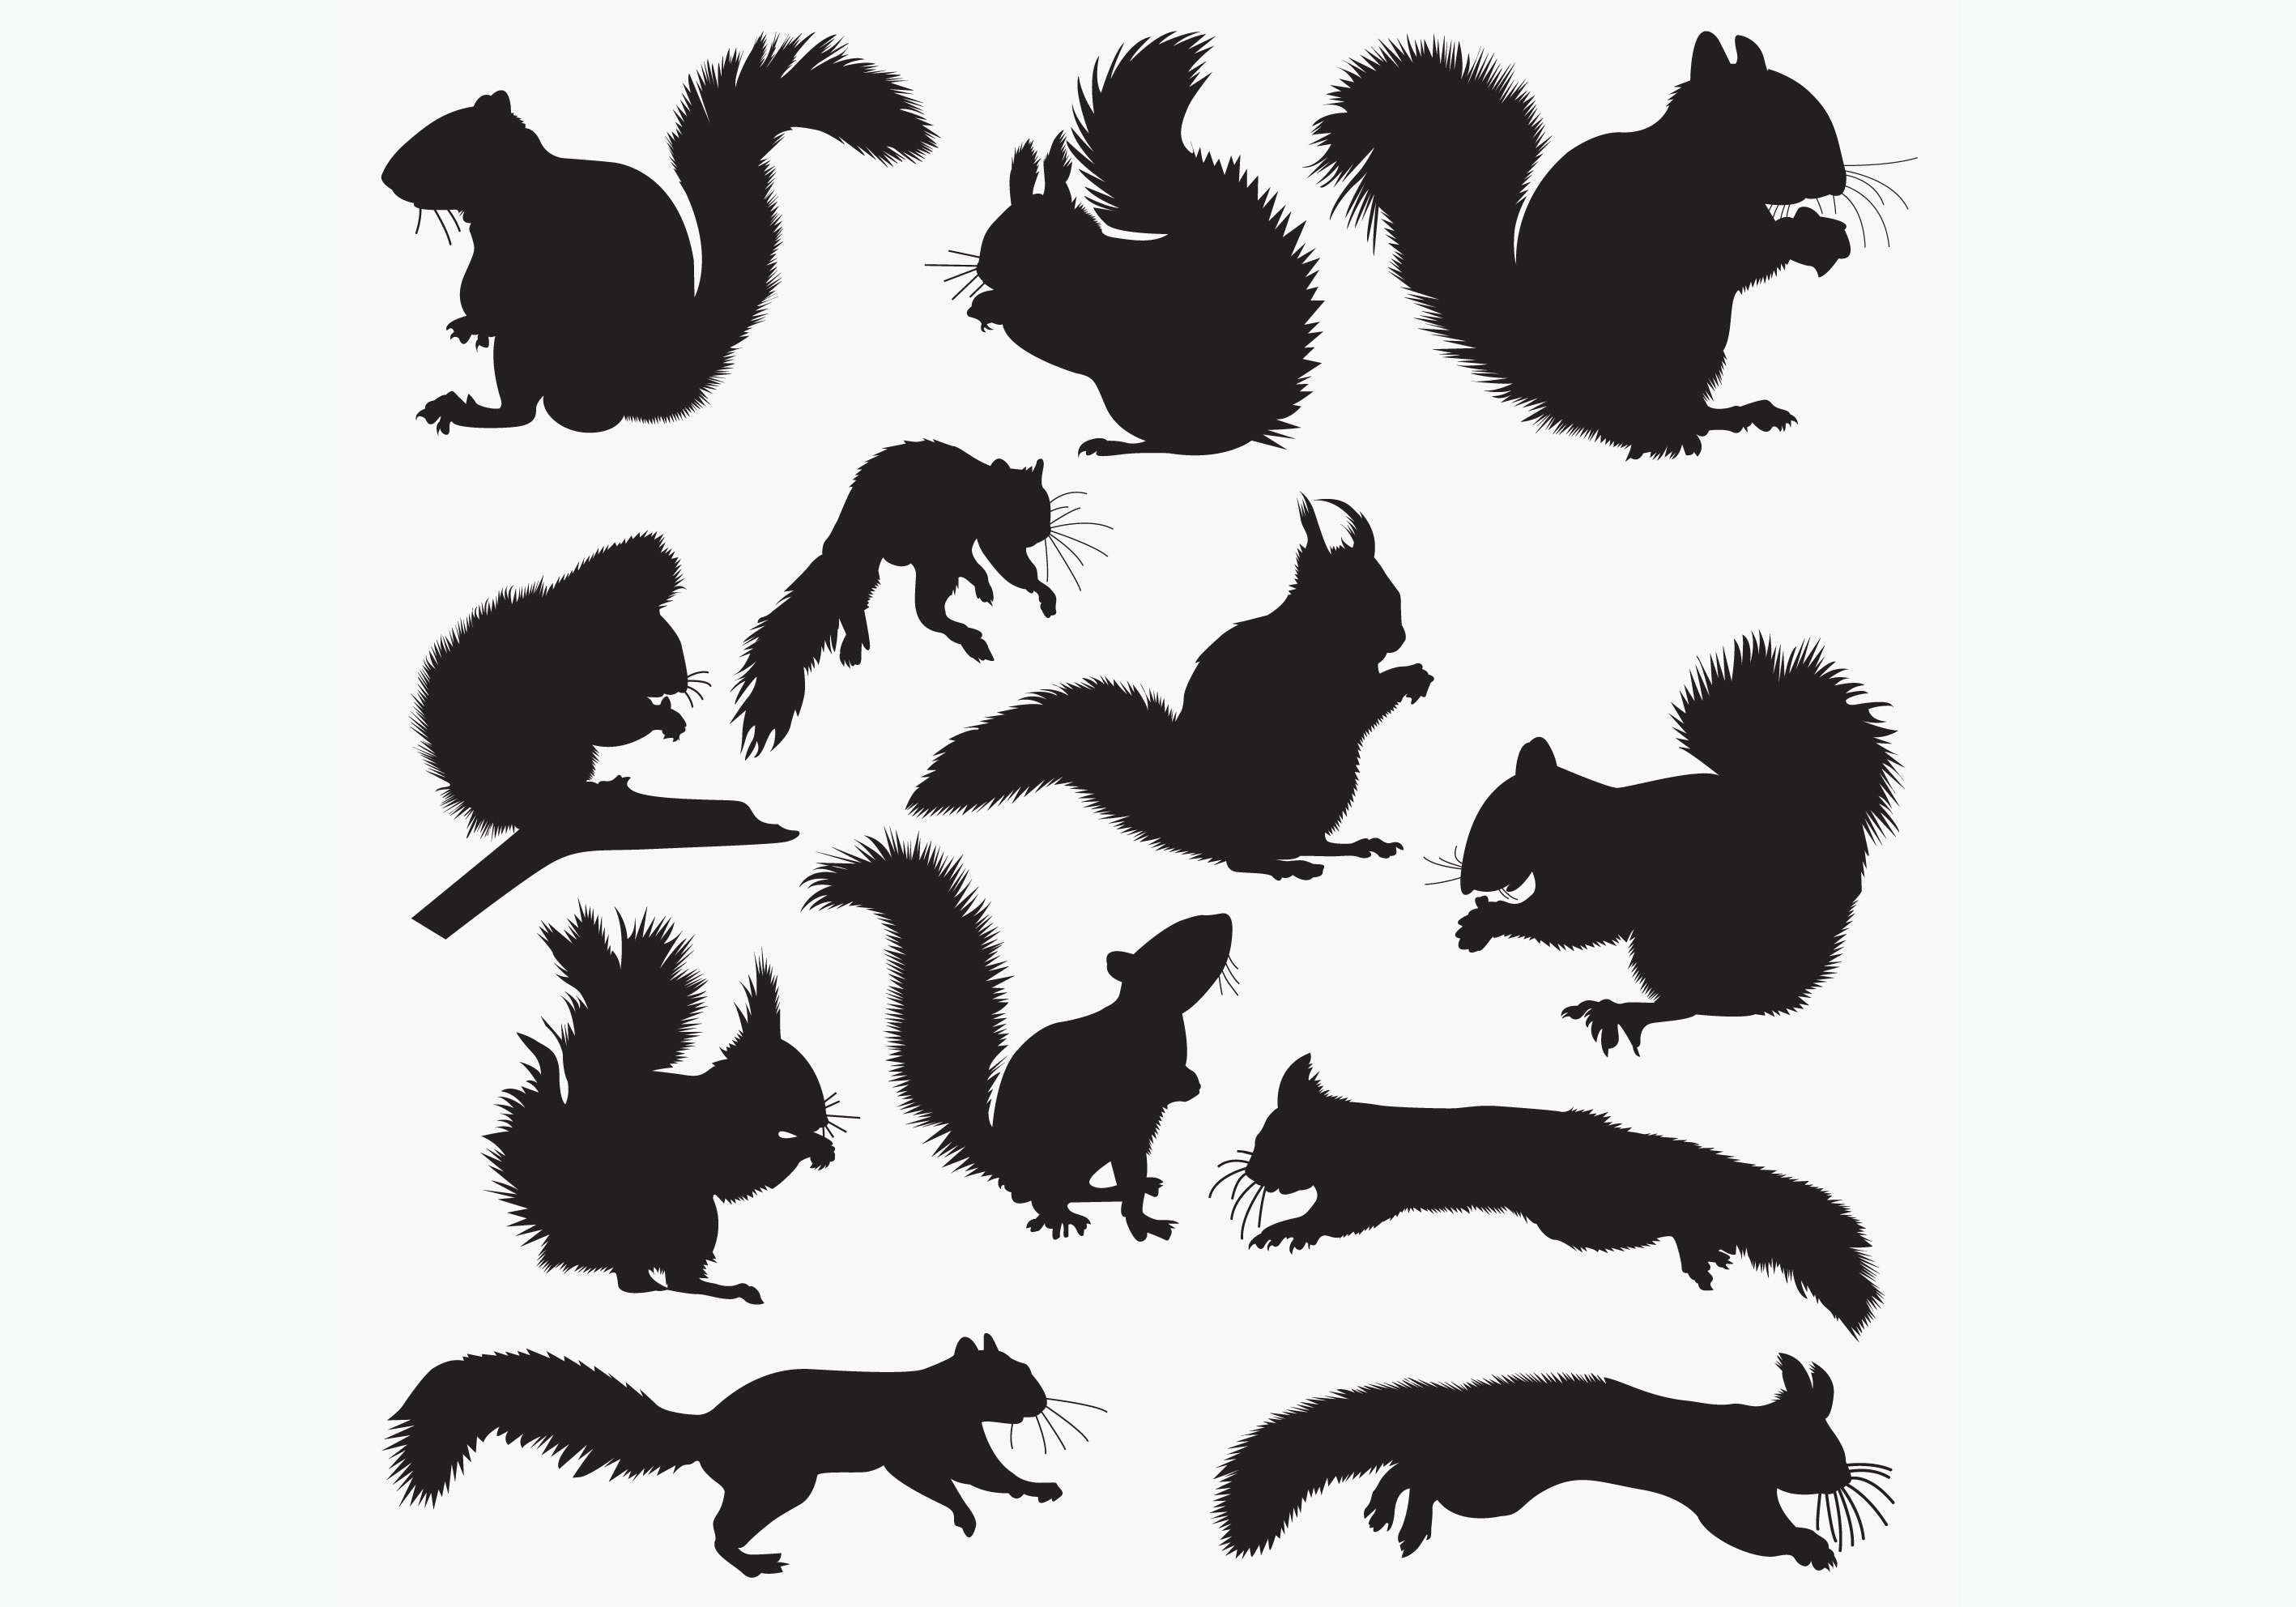 Download Free Squirrel Silhouettes Graphic By Octopusgraphic Creative Fabrica for Cricut Explore, Silhouette and other cutting machines.